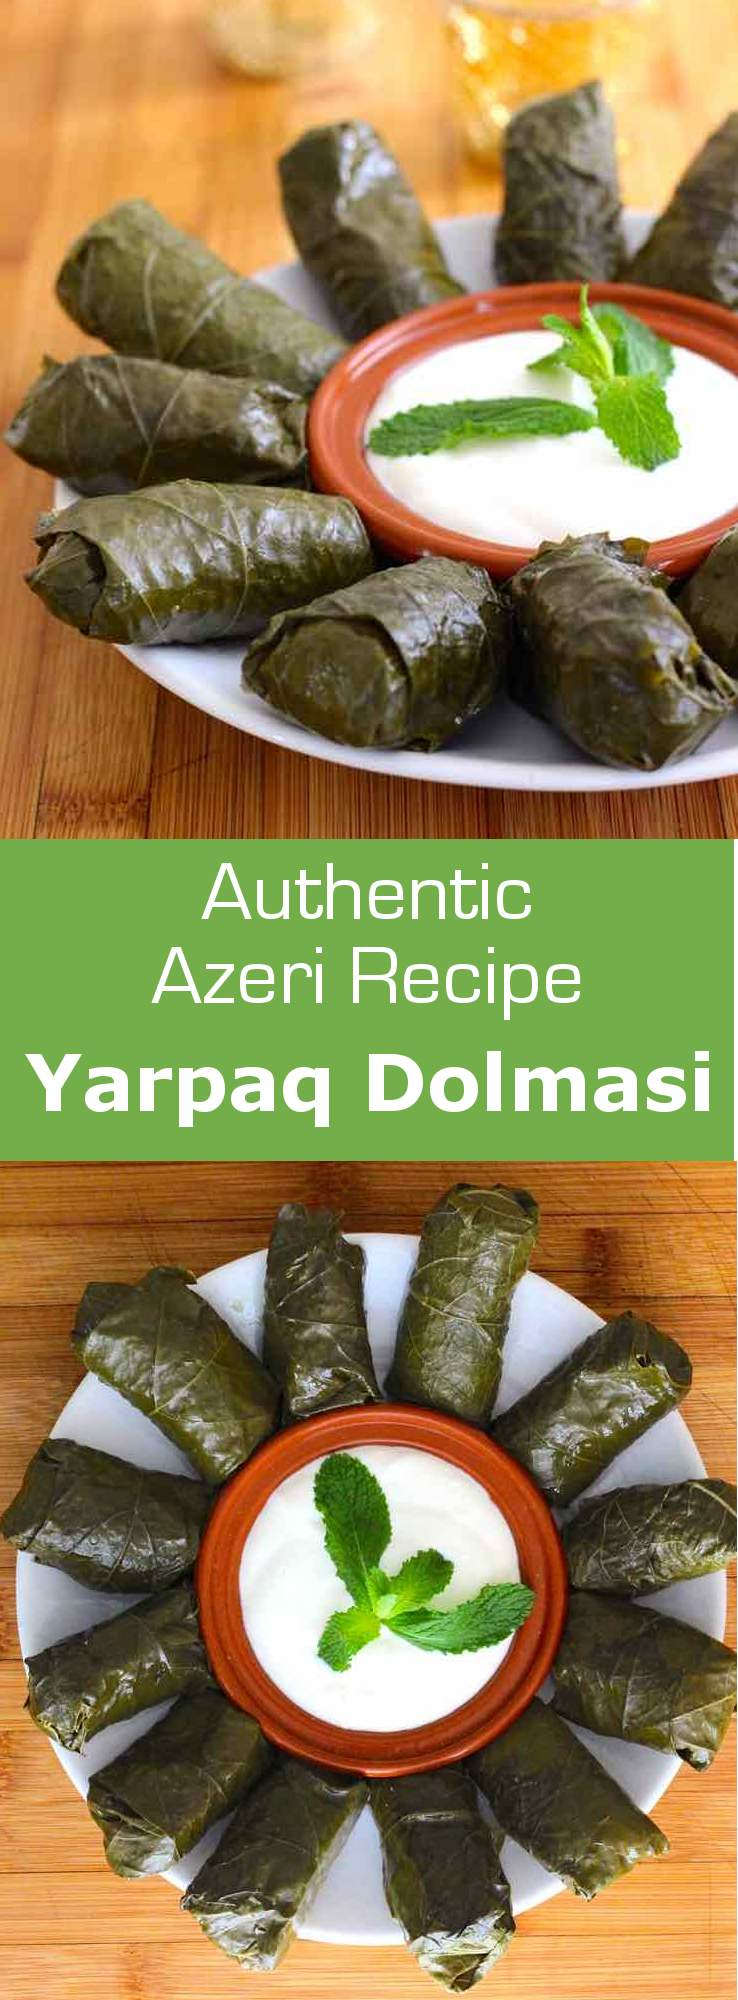 Dolma refers to a family of stuffed grape leaves or vegetables, widespread in the Middle East, Western Asia and Mediterranean regions. #Azerbaijan #MiddleEast #MiddleEastern #MiddleEasternRecipe #Mediterranean #MediterraneanRecipe #MediterraneanCuisine #WorldCuisine #196flavors